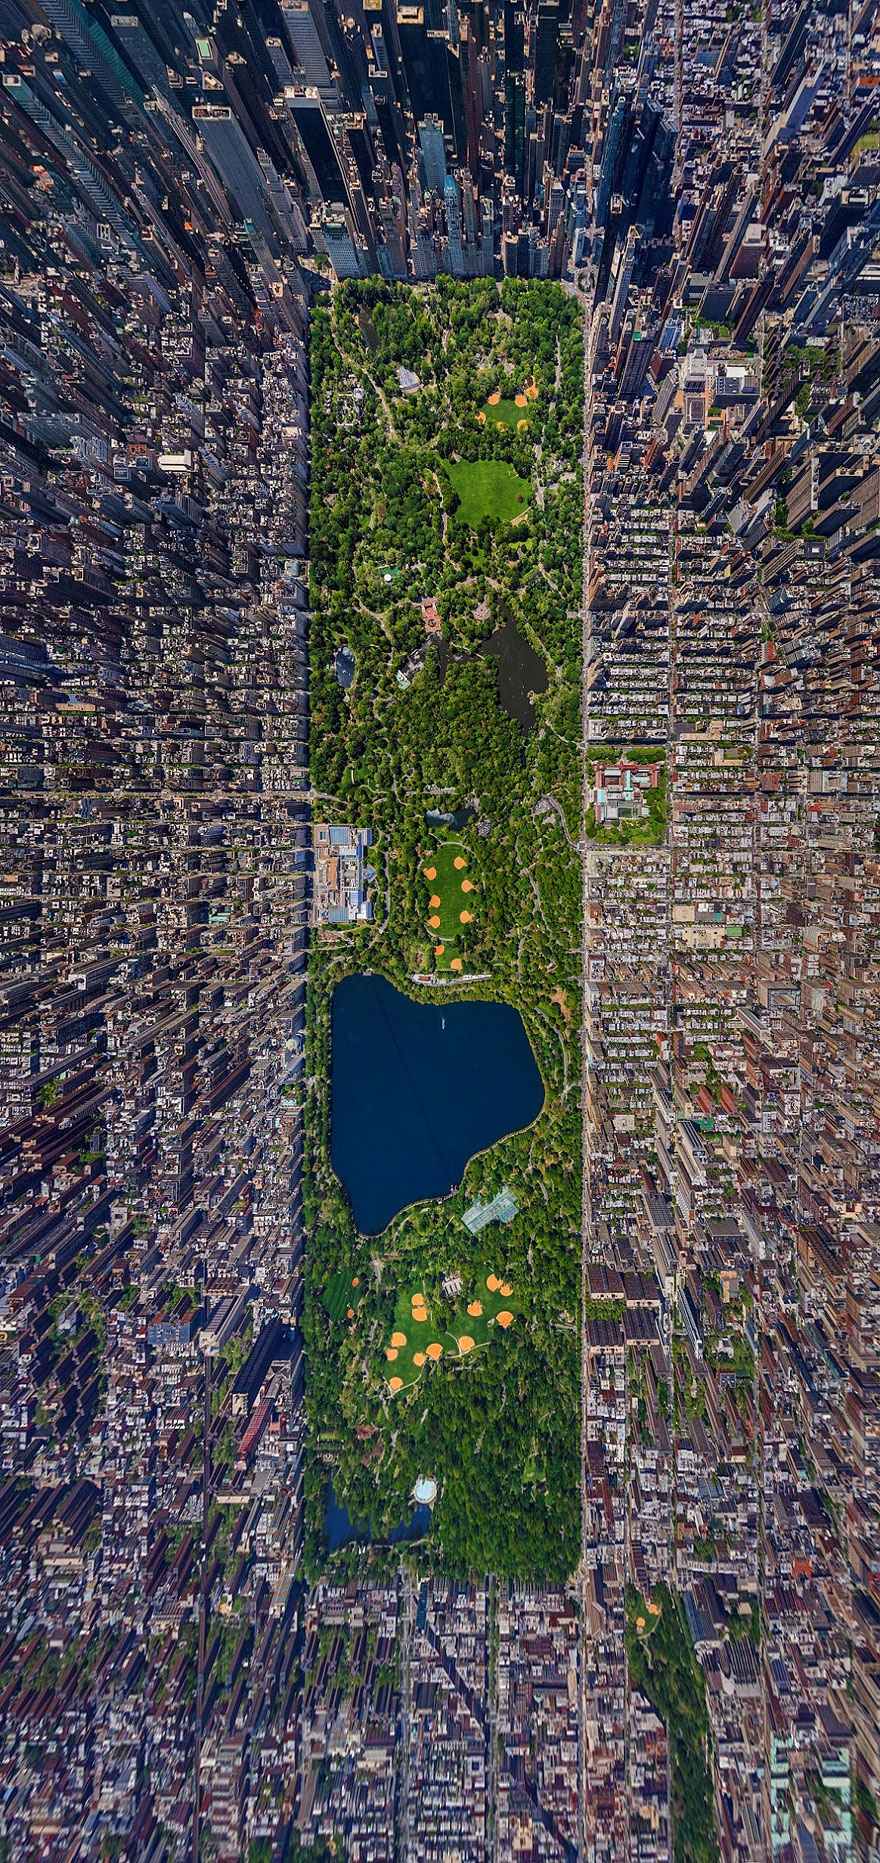 Central Park in New York, USA